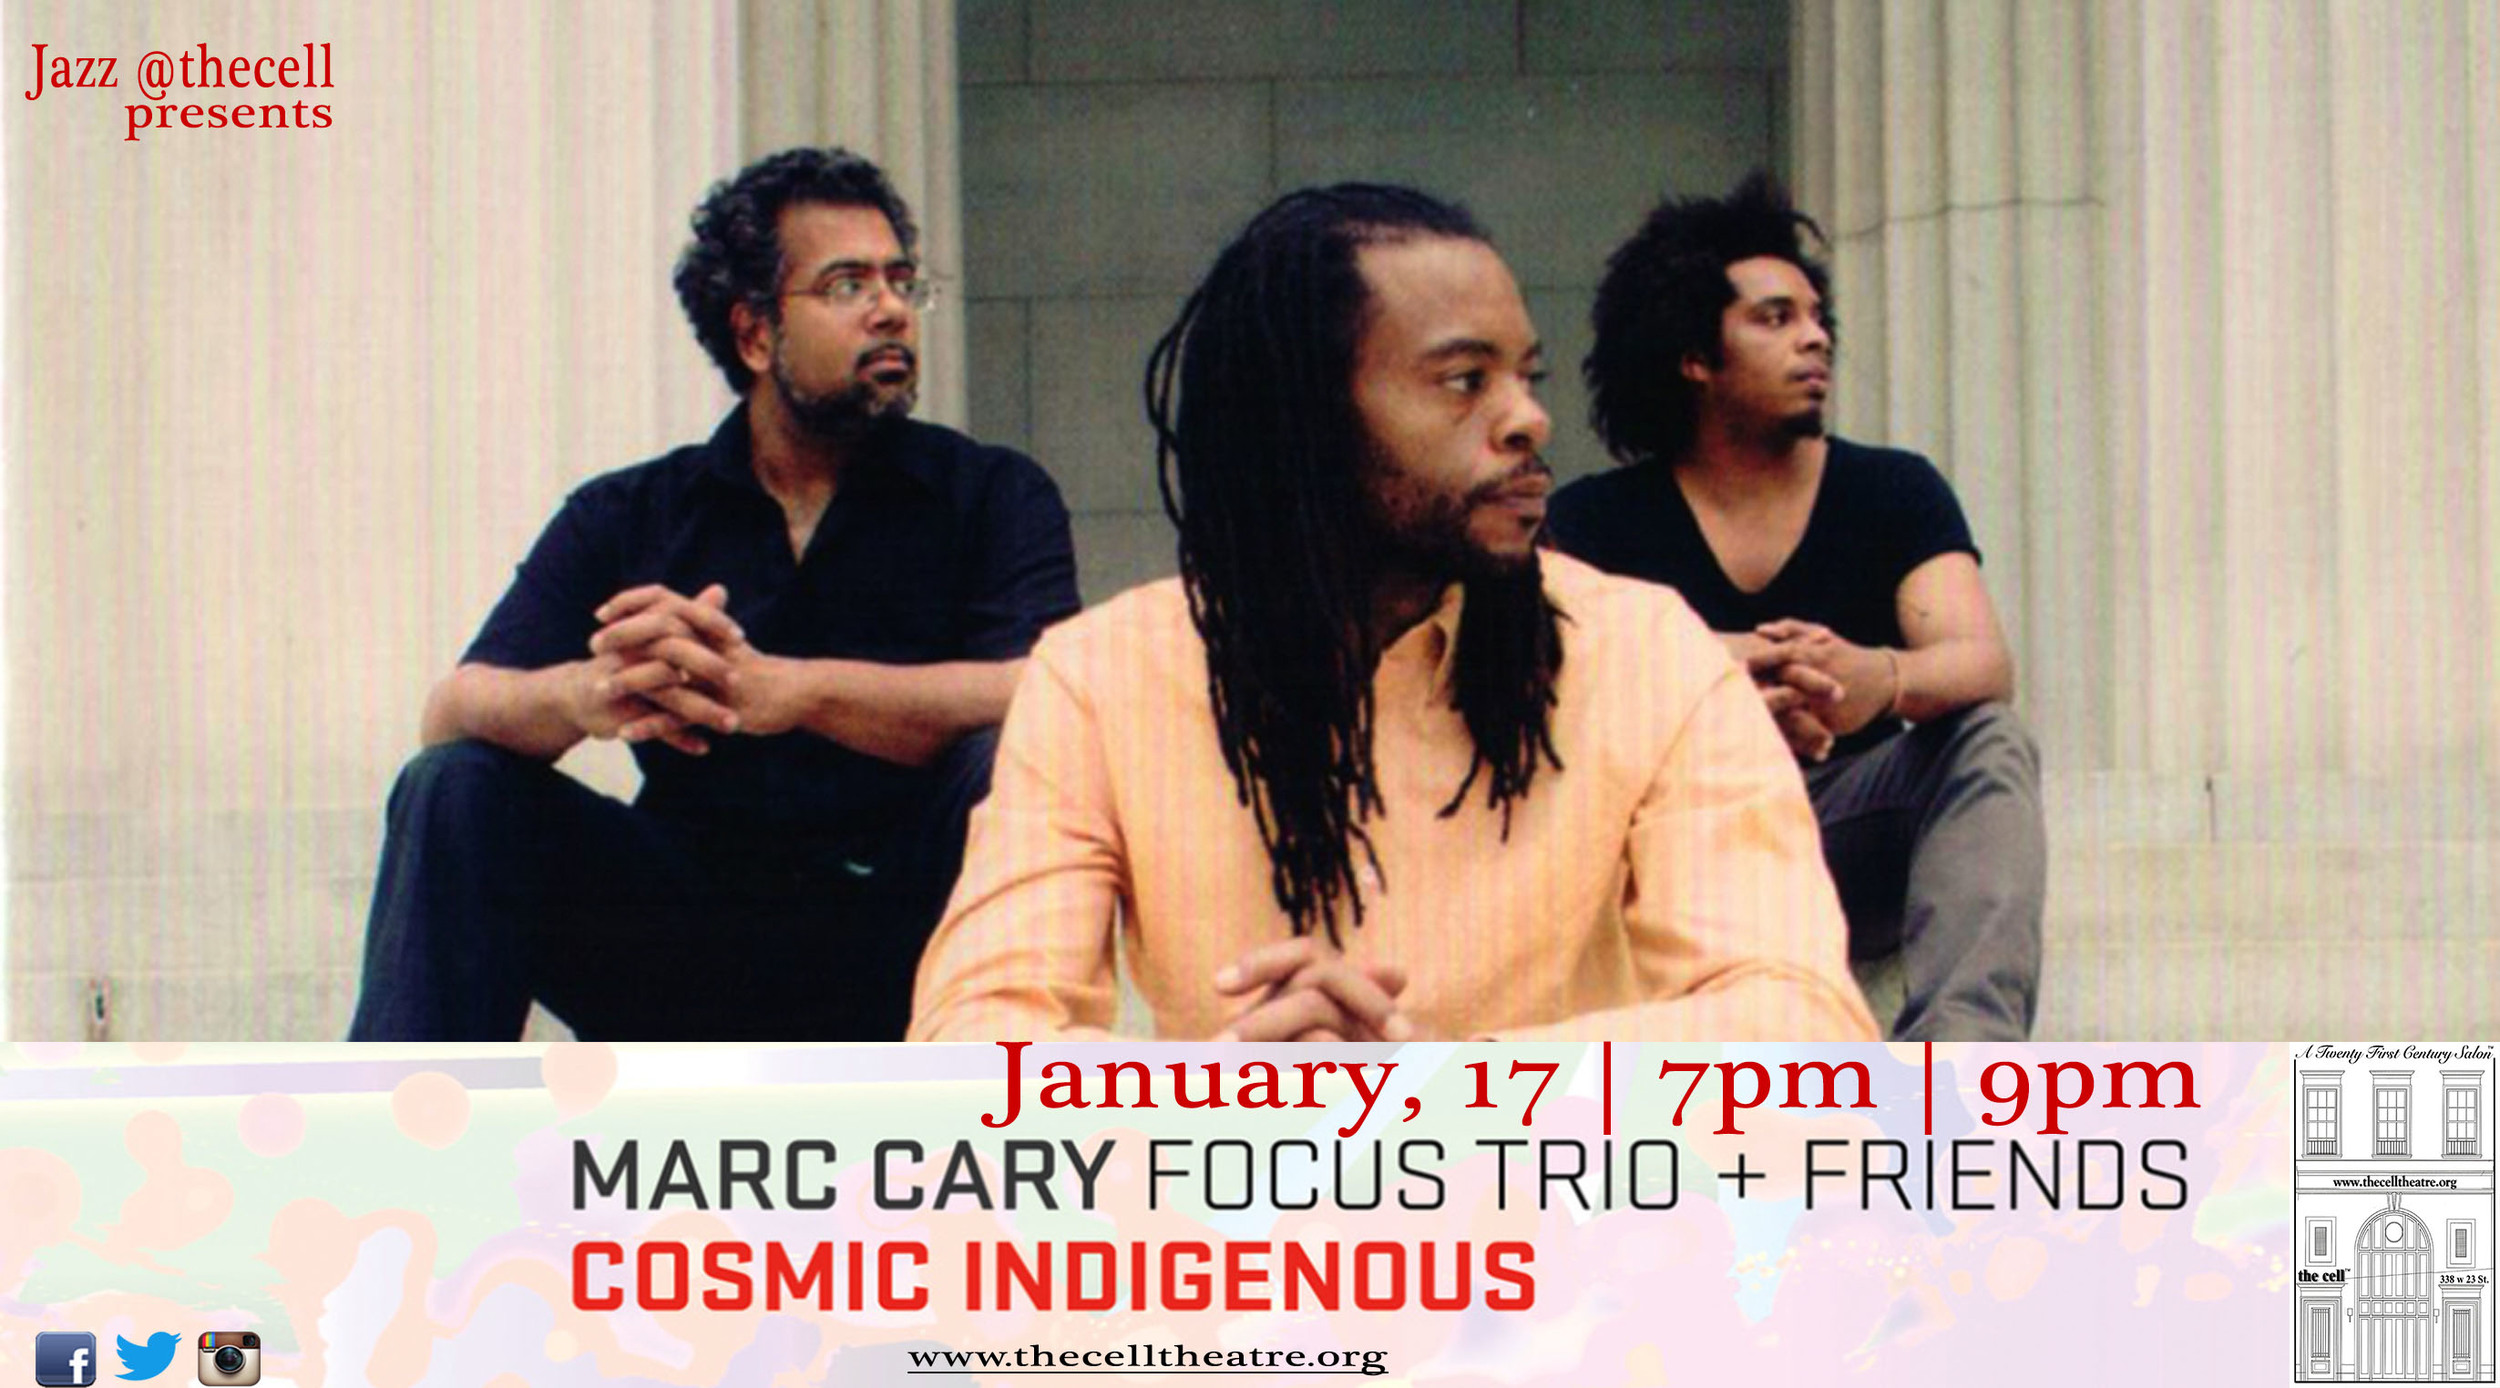 Indigenous People is a group Marcstarted along with Tarus Mateen and Yarborough Charles Laws in 1998. Theyrecorded several records in the span of 6 years.  In 2010, Marcdecided to explore these same concepts with Focus Trio, which were started by Indigenous People, and became Cosmic Indigenous.  They brought some of our favorite musical contributors into the fold, to appear on the upcoming residencyand accomplish the sound rooted from Indigenous People.  Almost all of thesongs that will be performed at the cell on Jan. 17 are rooted in the concept of North Indian classical raga music, but with the melodic voice of Awa Sangho from Mali singing traditional Malian desert melodies that appear in both cultures in the same tonal set.